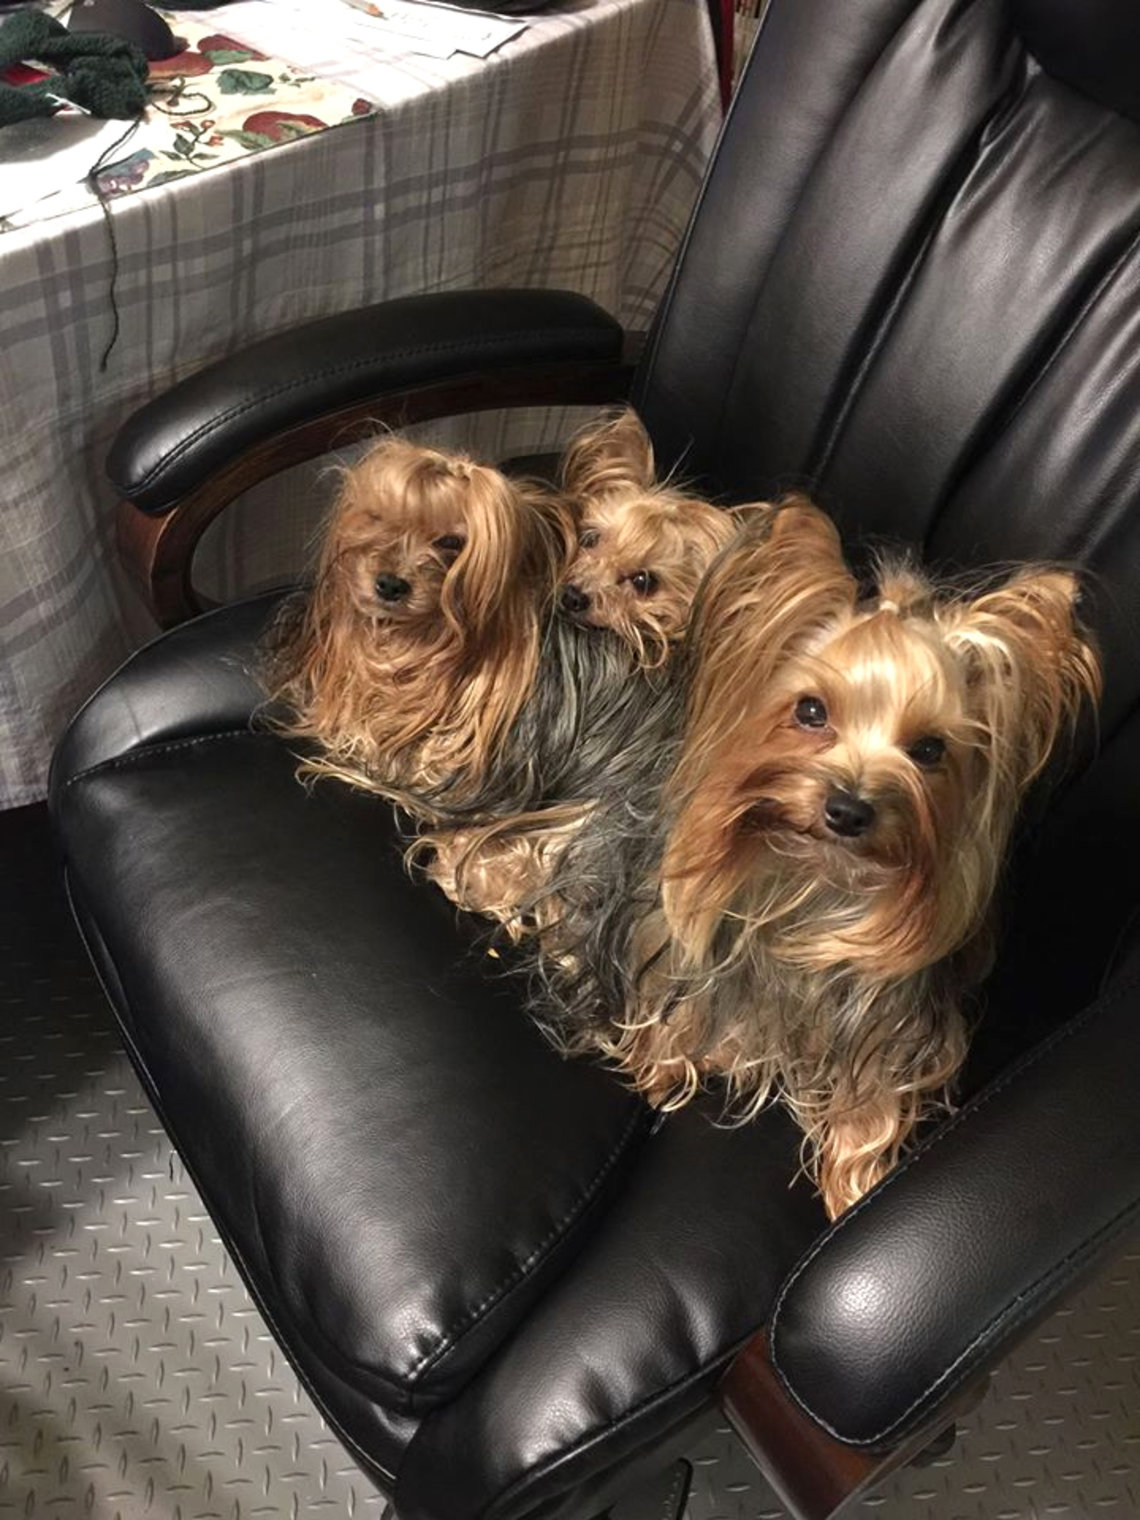 Three dogs sit in an office chair